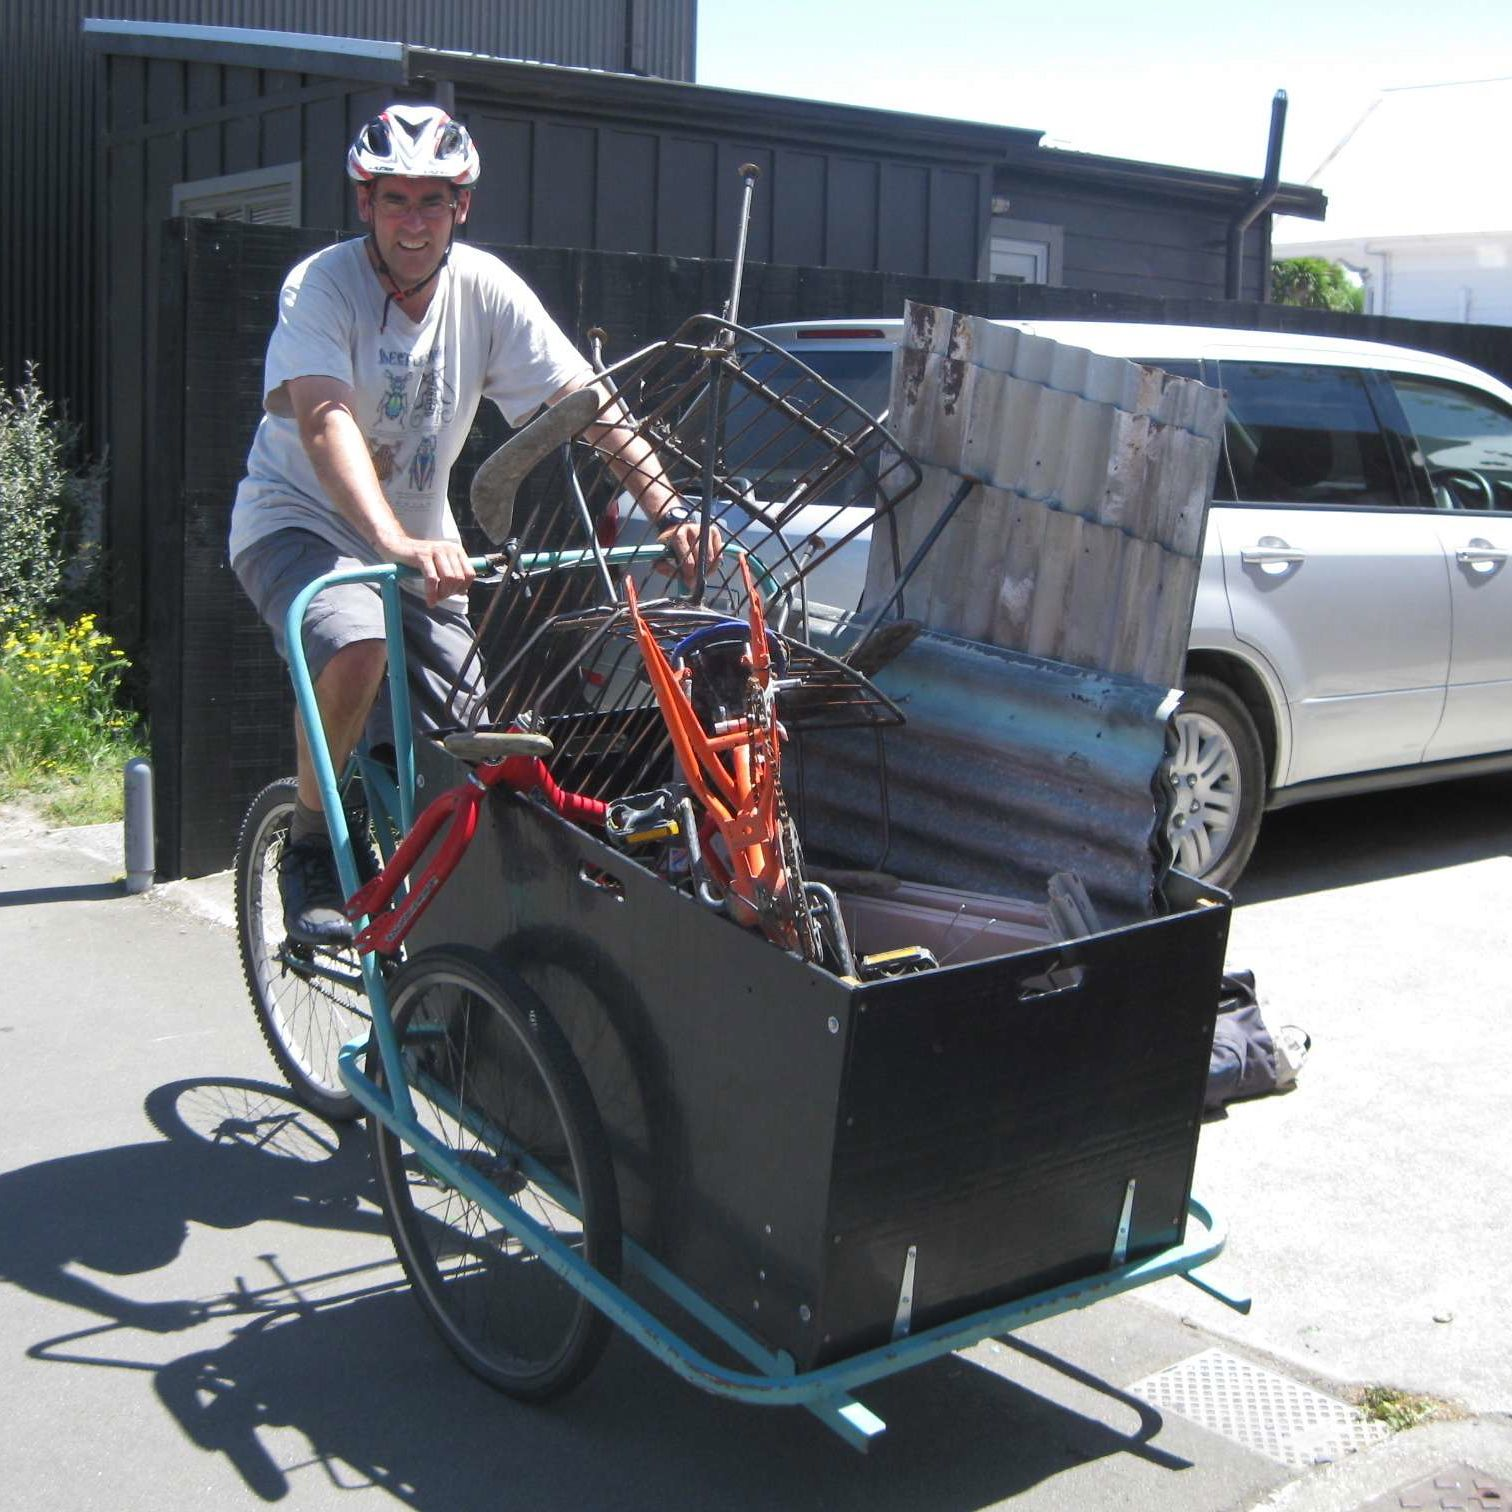 Christchurch Otautahi Cargo Bike Annual Rally (CHOCBAR)